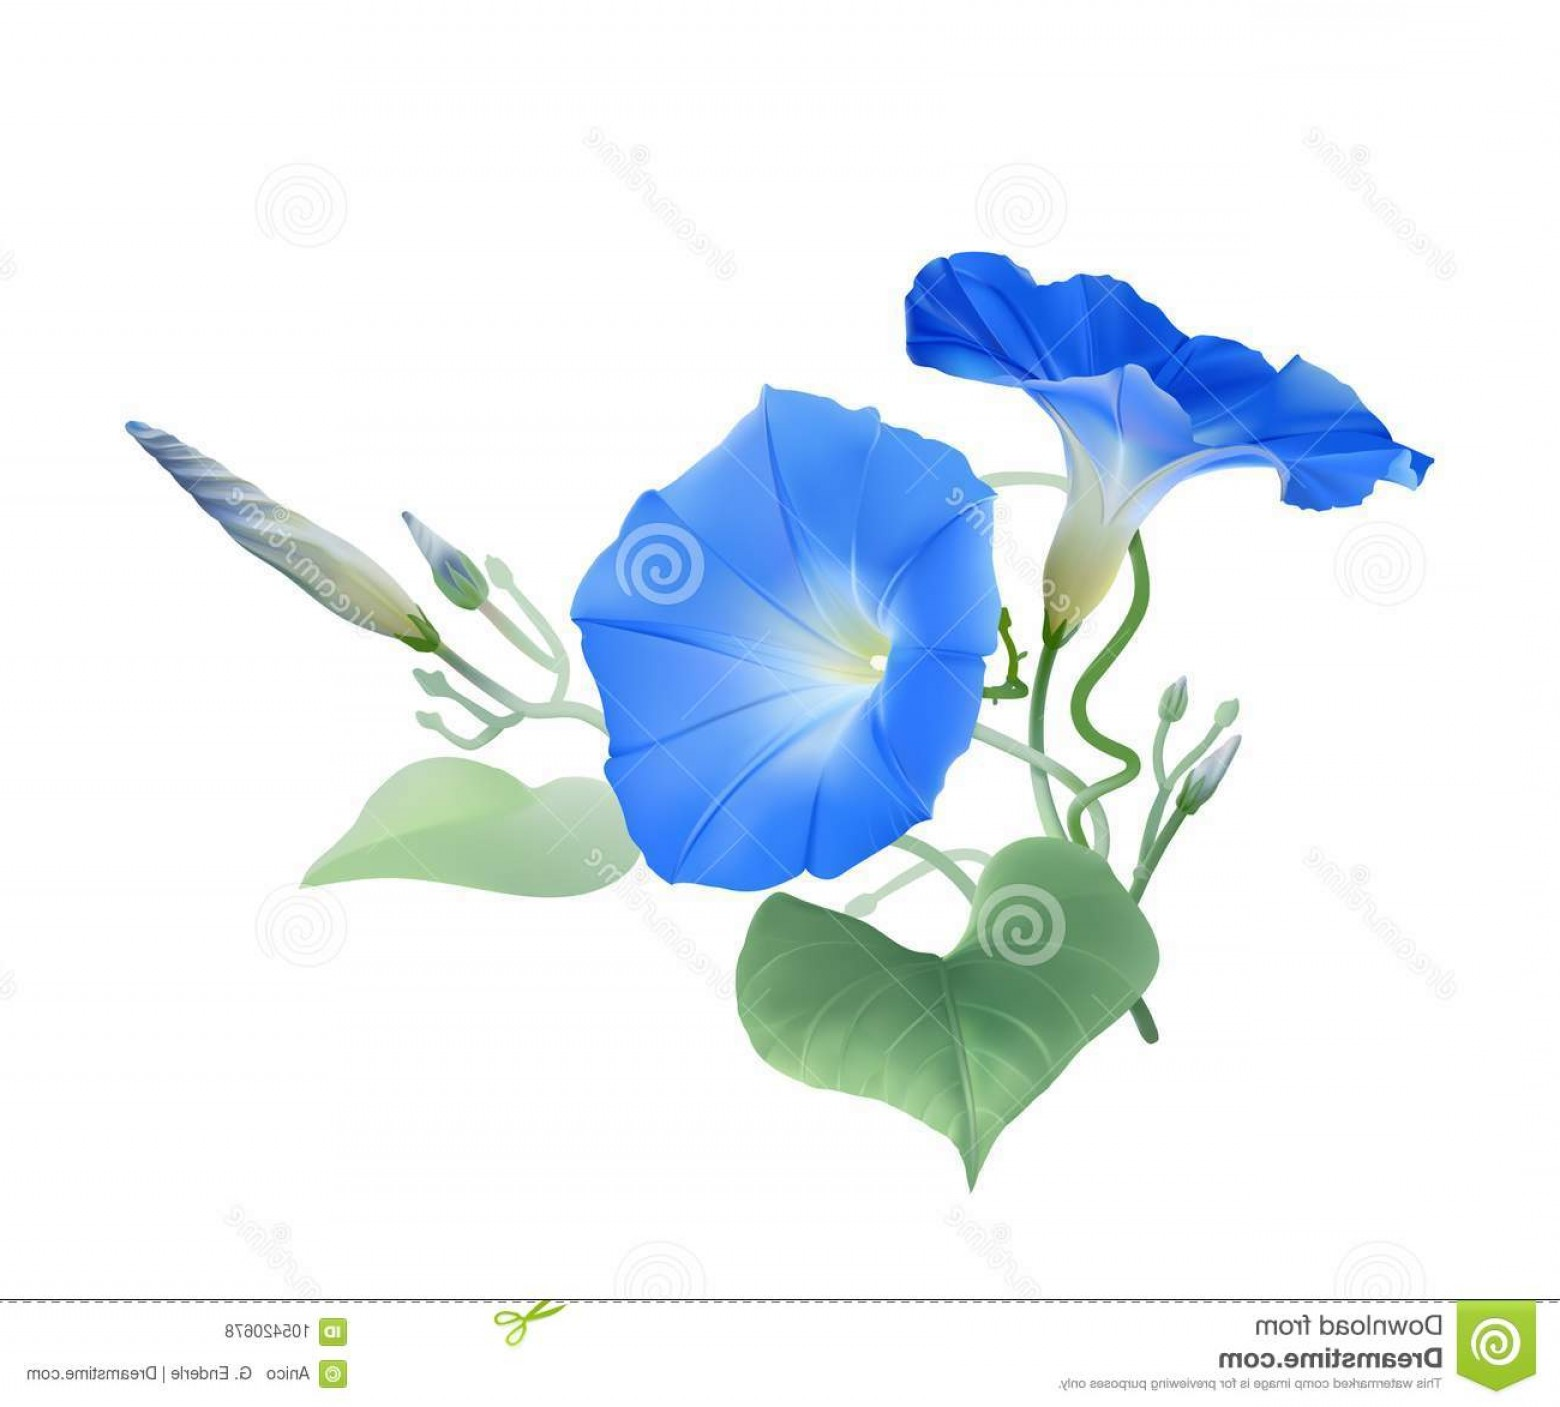 Morning Glory Transparent Vector: Flowers Buds Twisted Vines Ipomoea Tricolor Hand Drawn Vector Illustration Transparent Background Morning Glory Heavenly Image